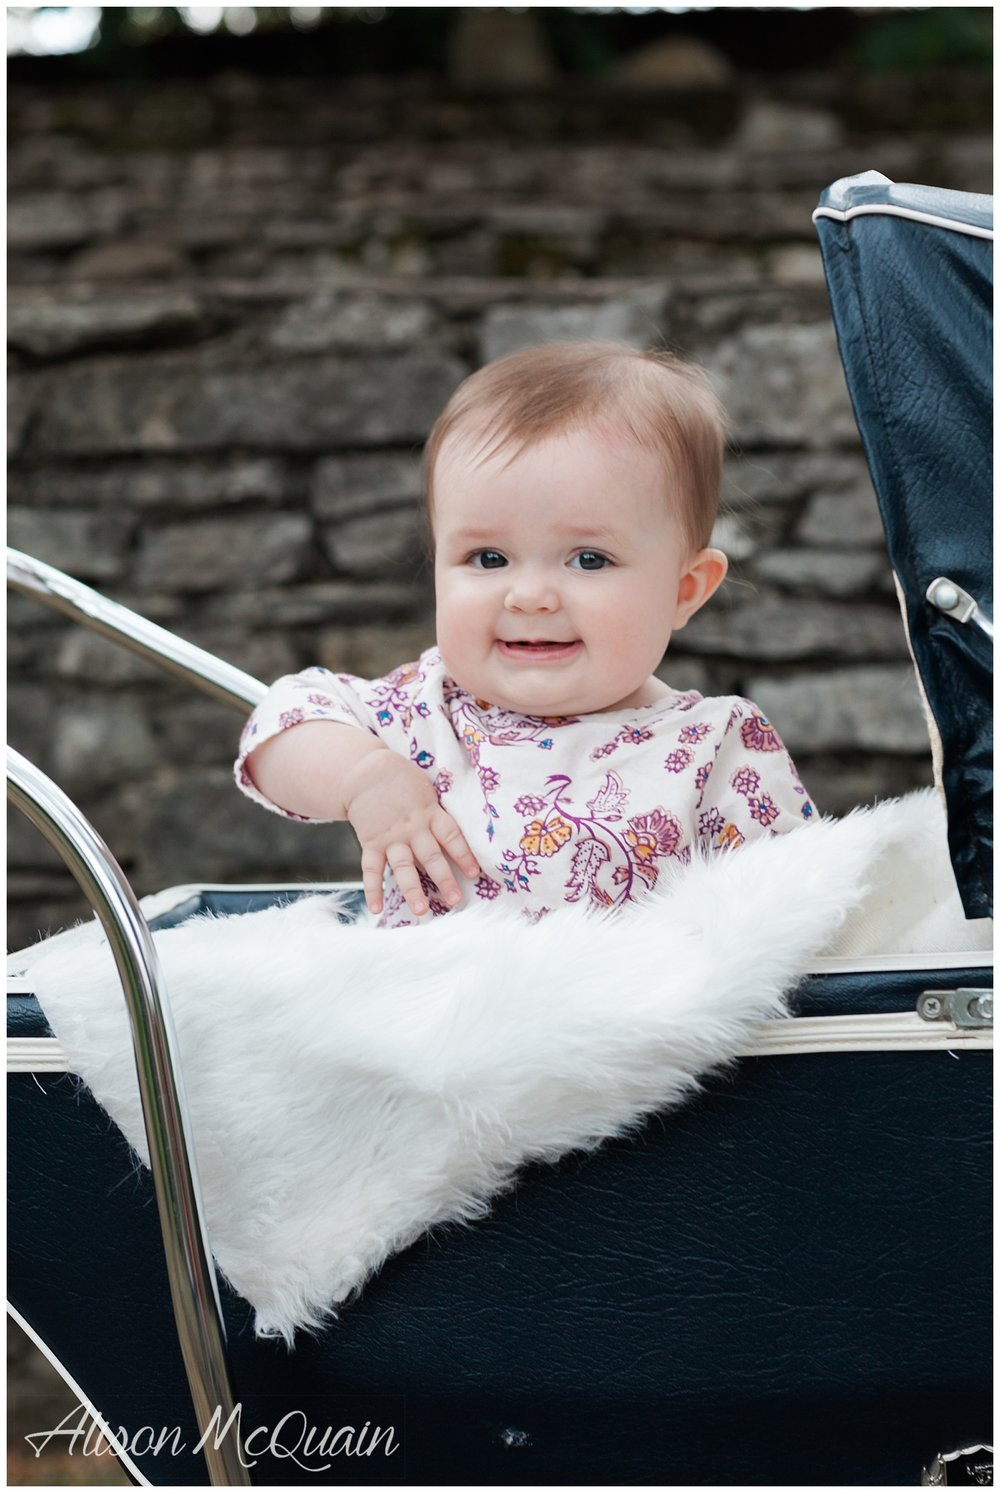 She wasn't totally into the pram. But she looks like she is here!